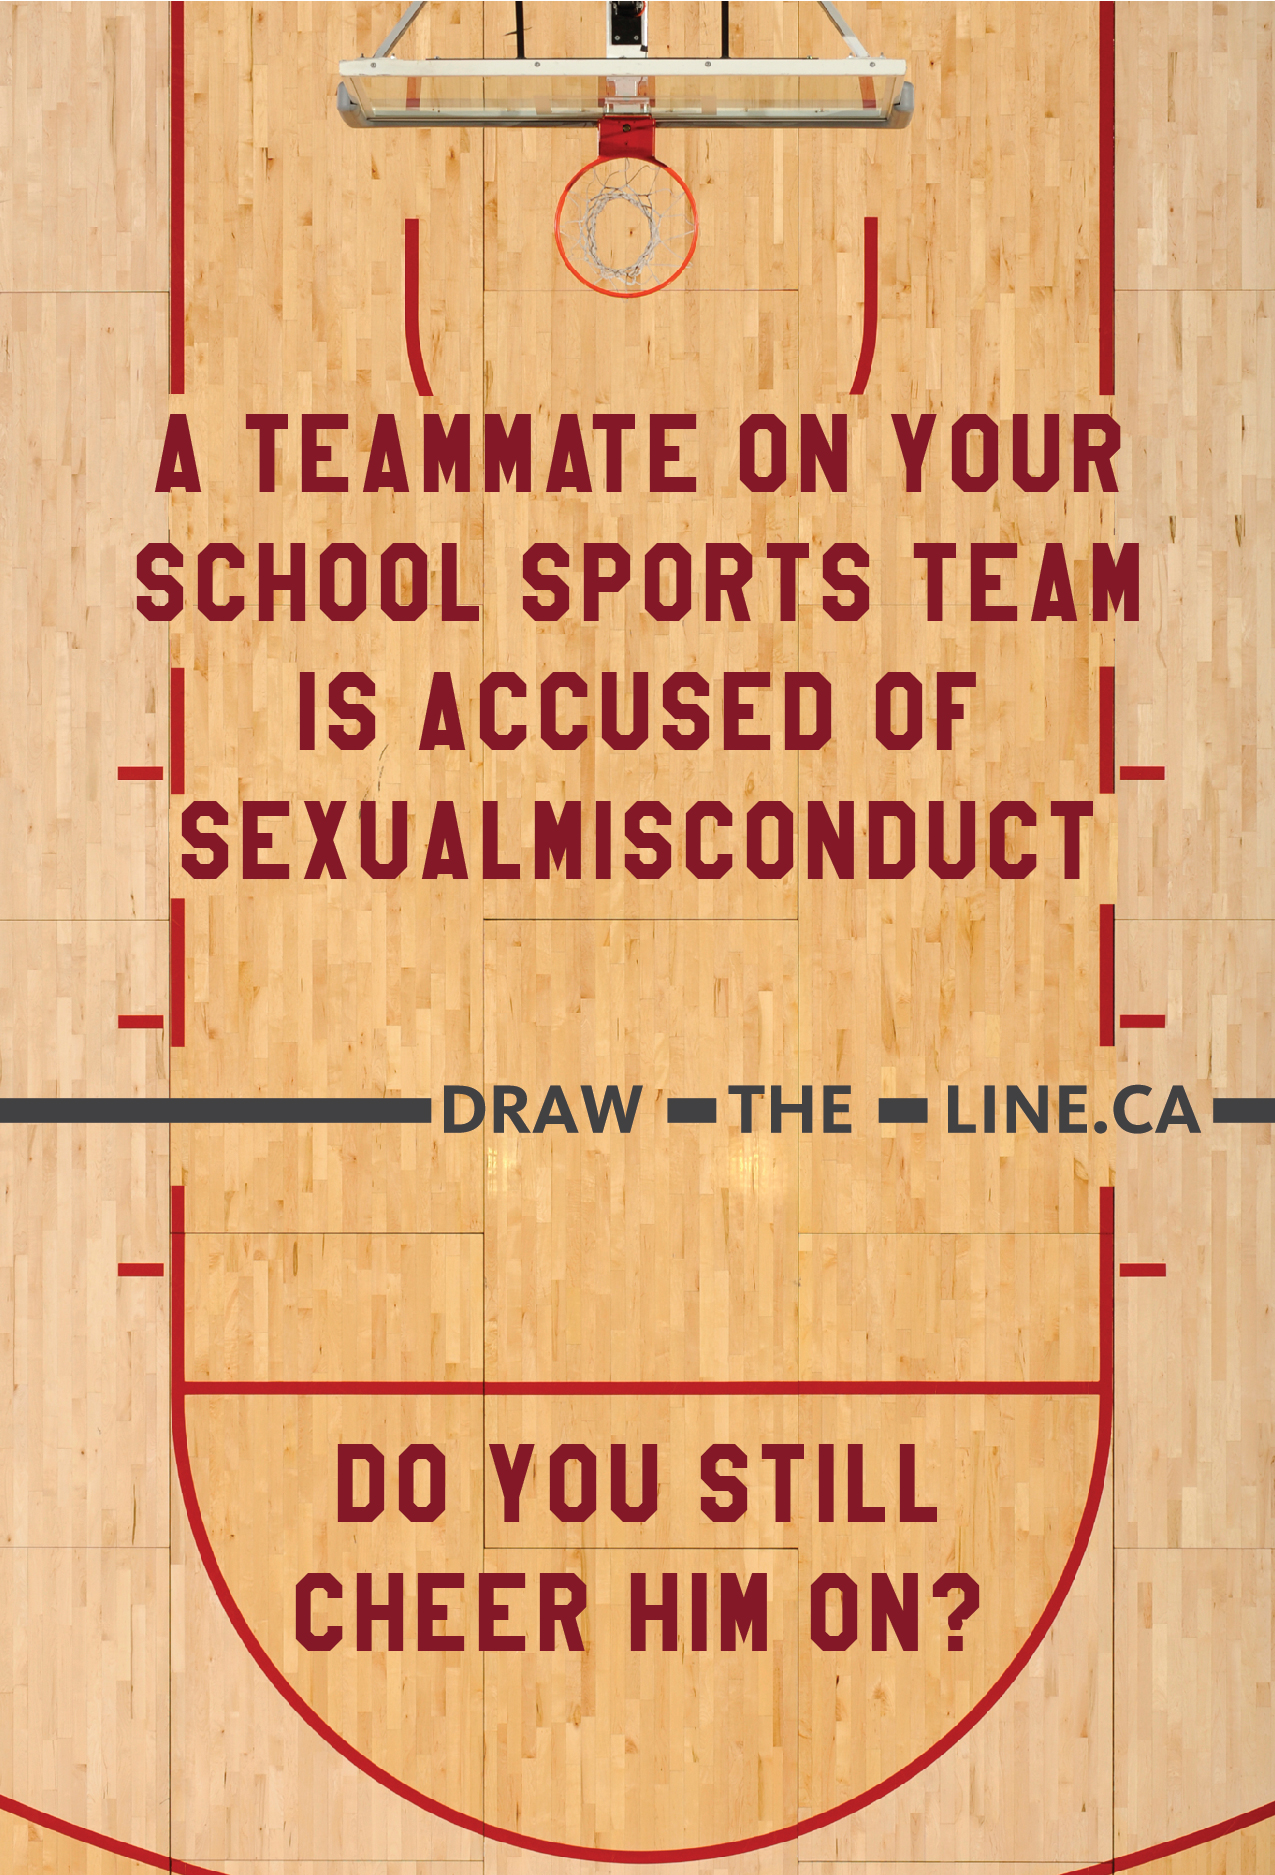 WR_DTL_Consent_BballCourt_2016-01